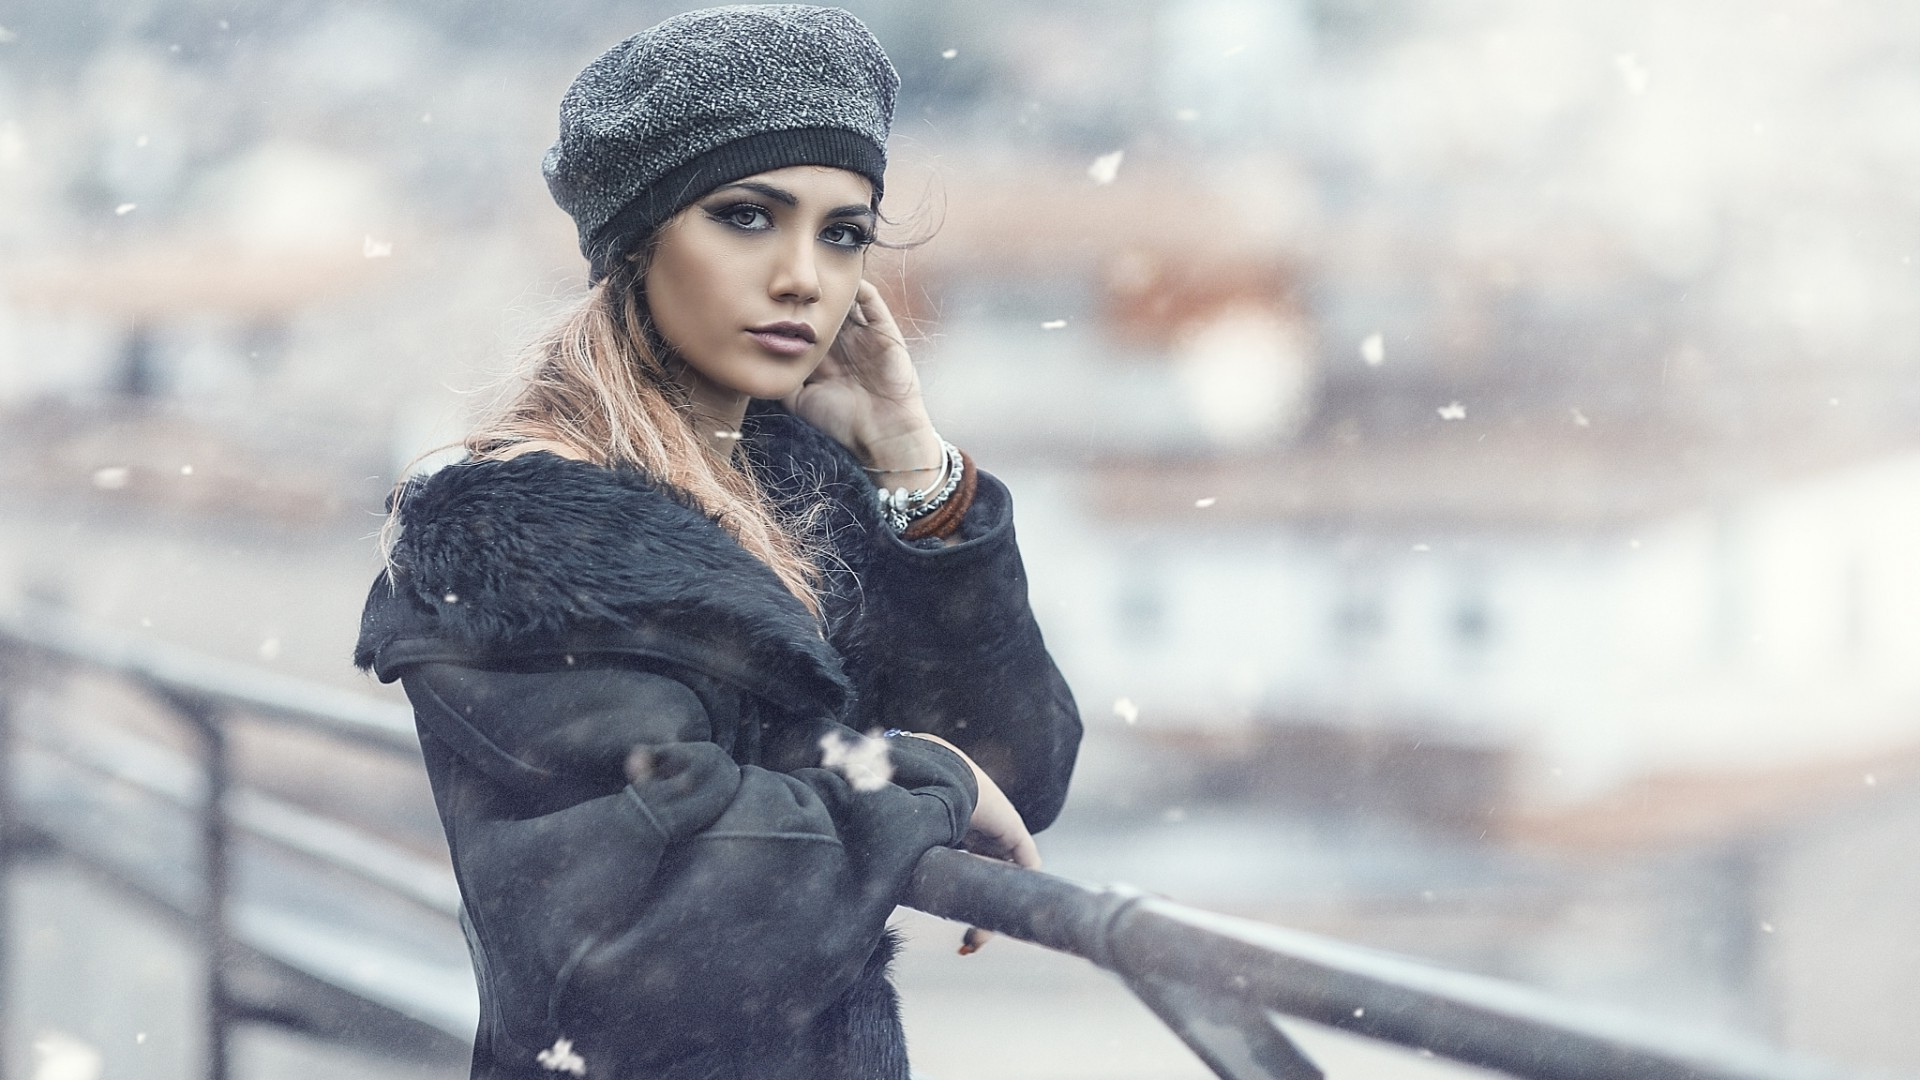 Update Your Winter Wardrobe With These 3 Must Haves The